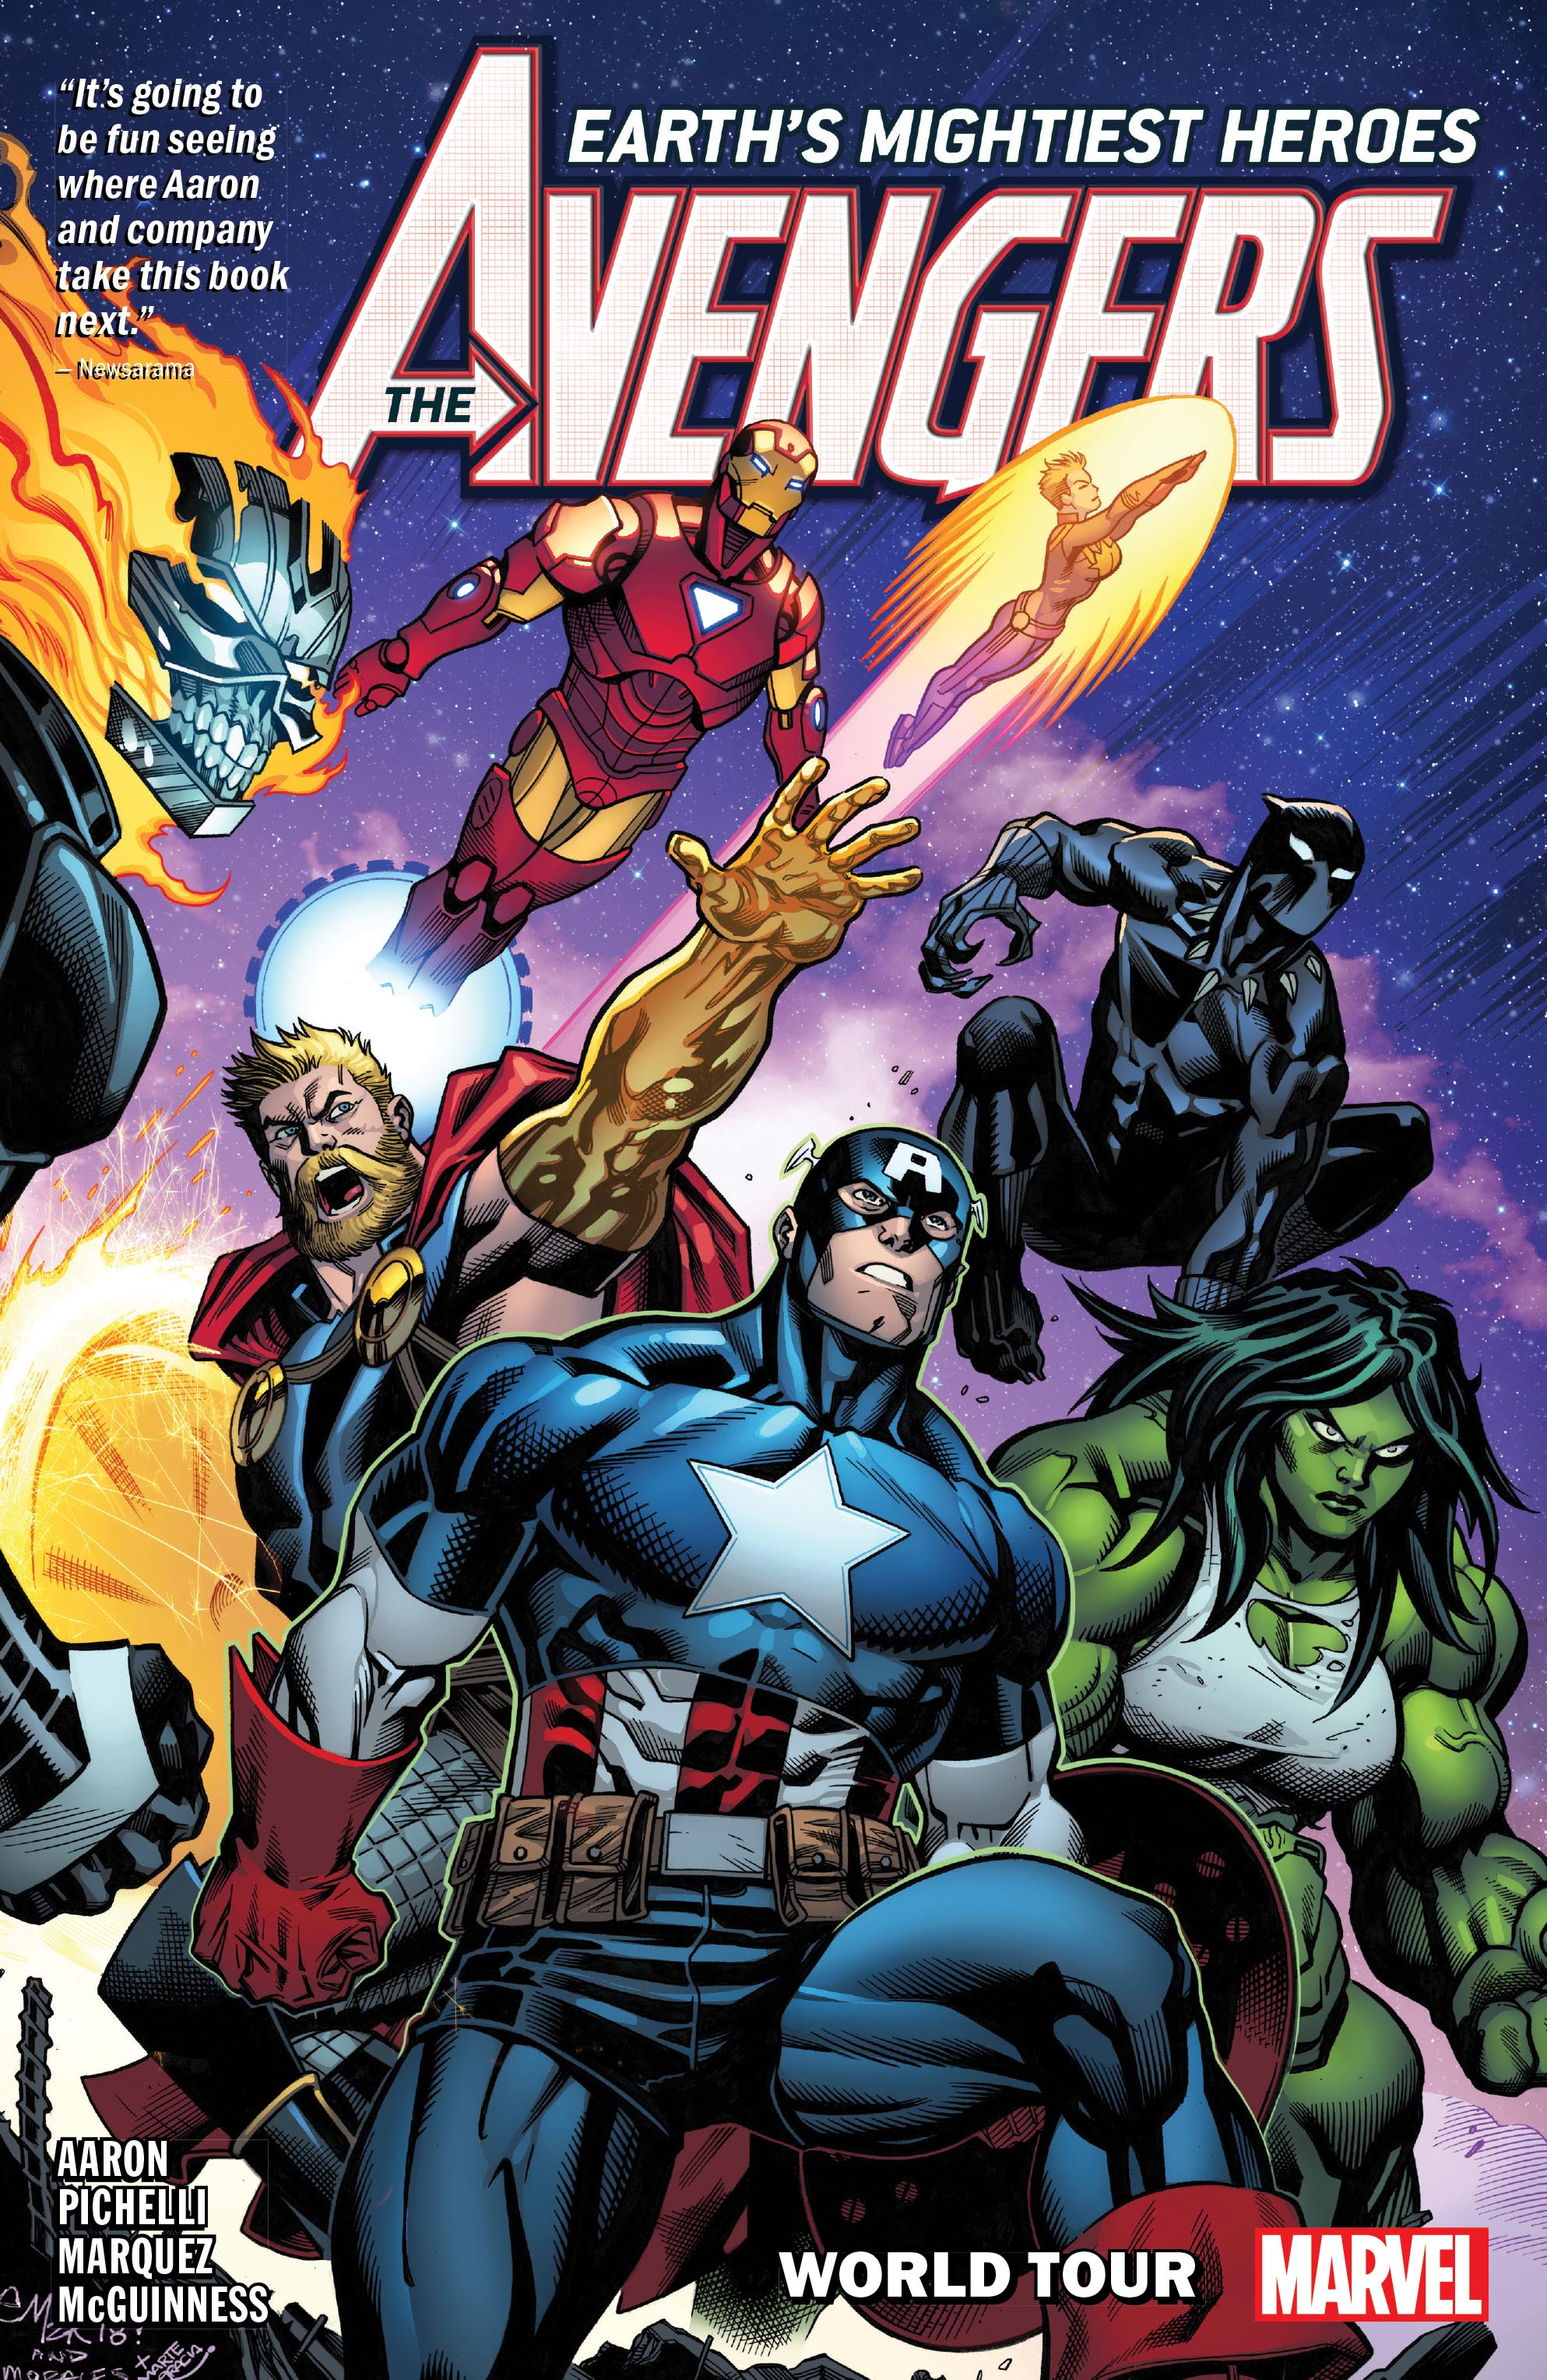 Avengers By Jason Aaron Vol. 2: World Tour (Trade Paperback)